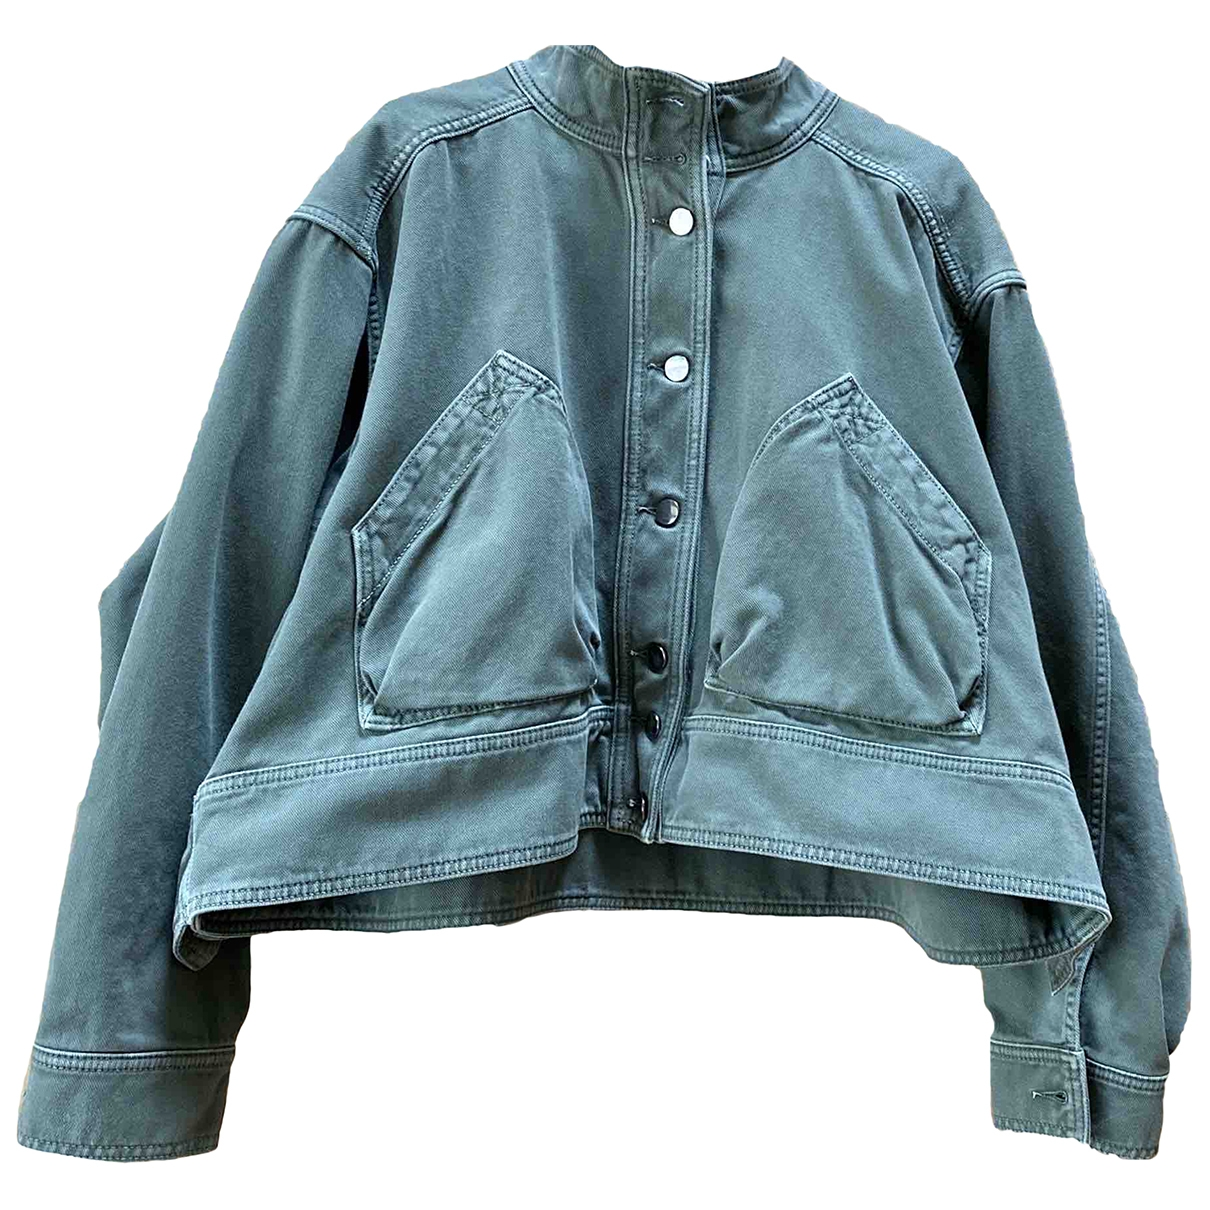 Valentino Garavani \N Green Cotton jacket for Women 40 IT